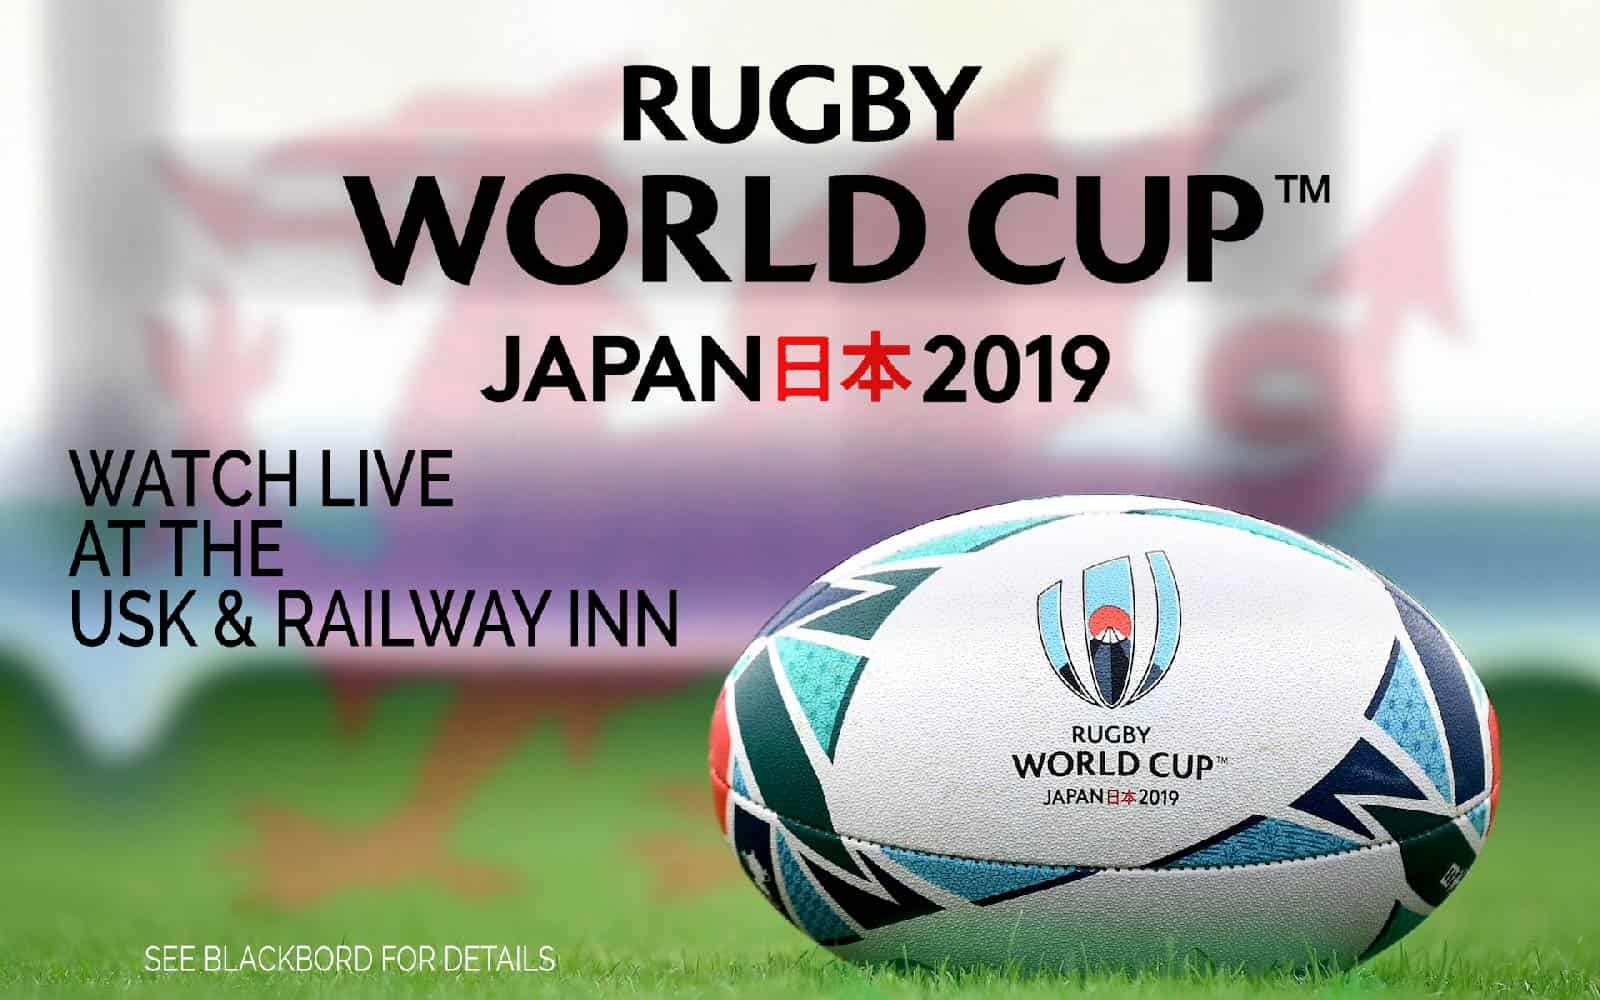 Watch The Rugby World Cup Usk And Railway Inn